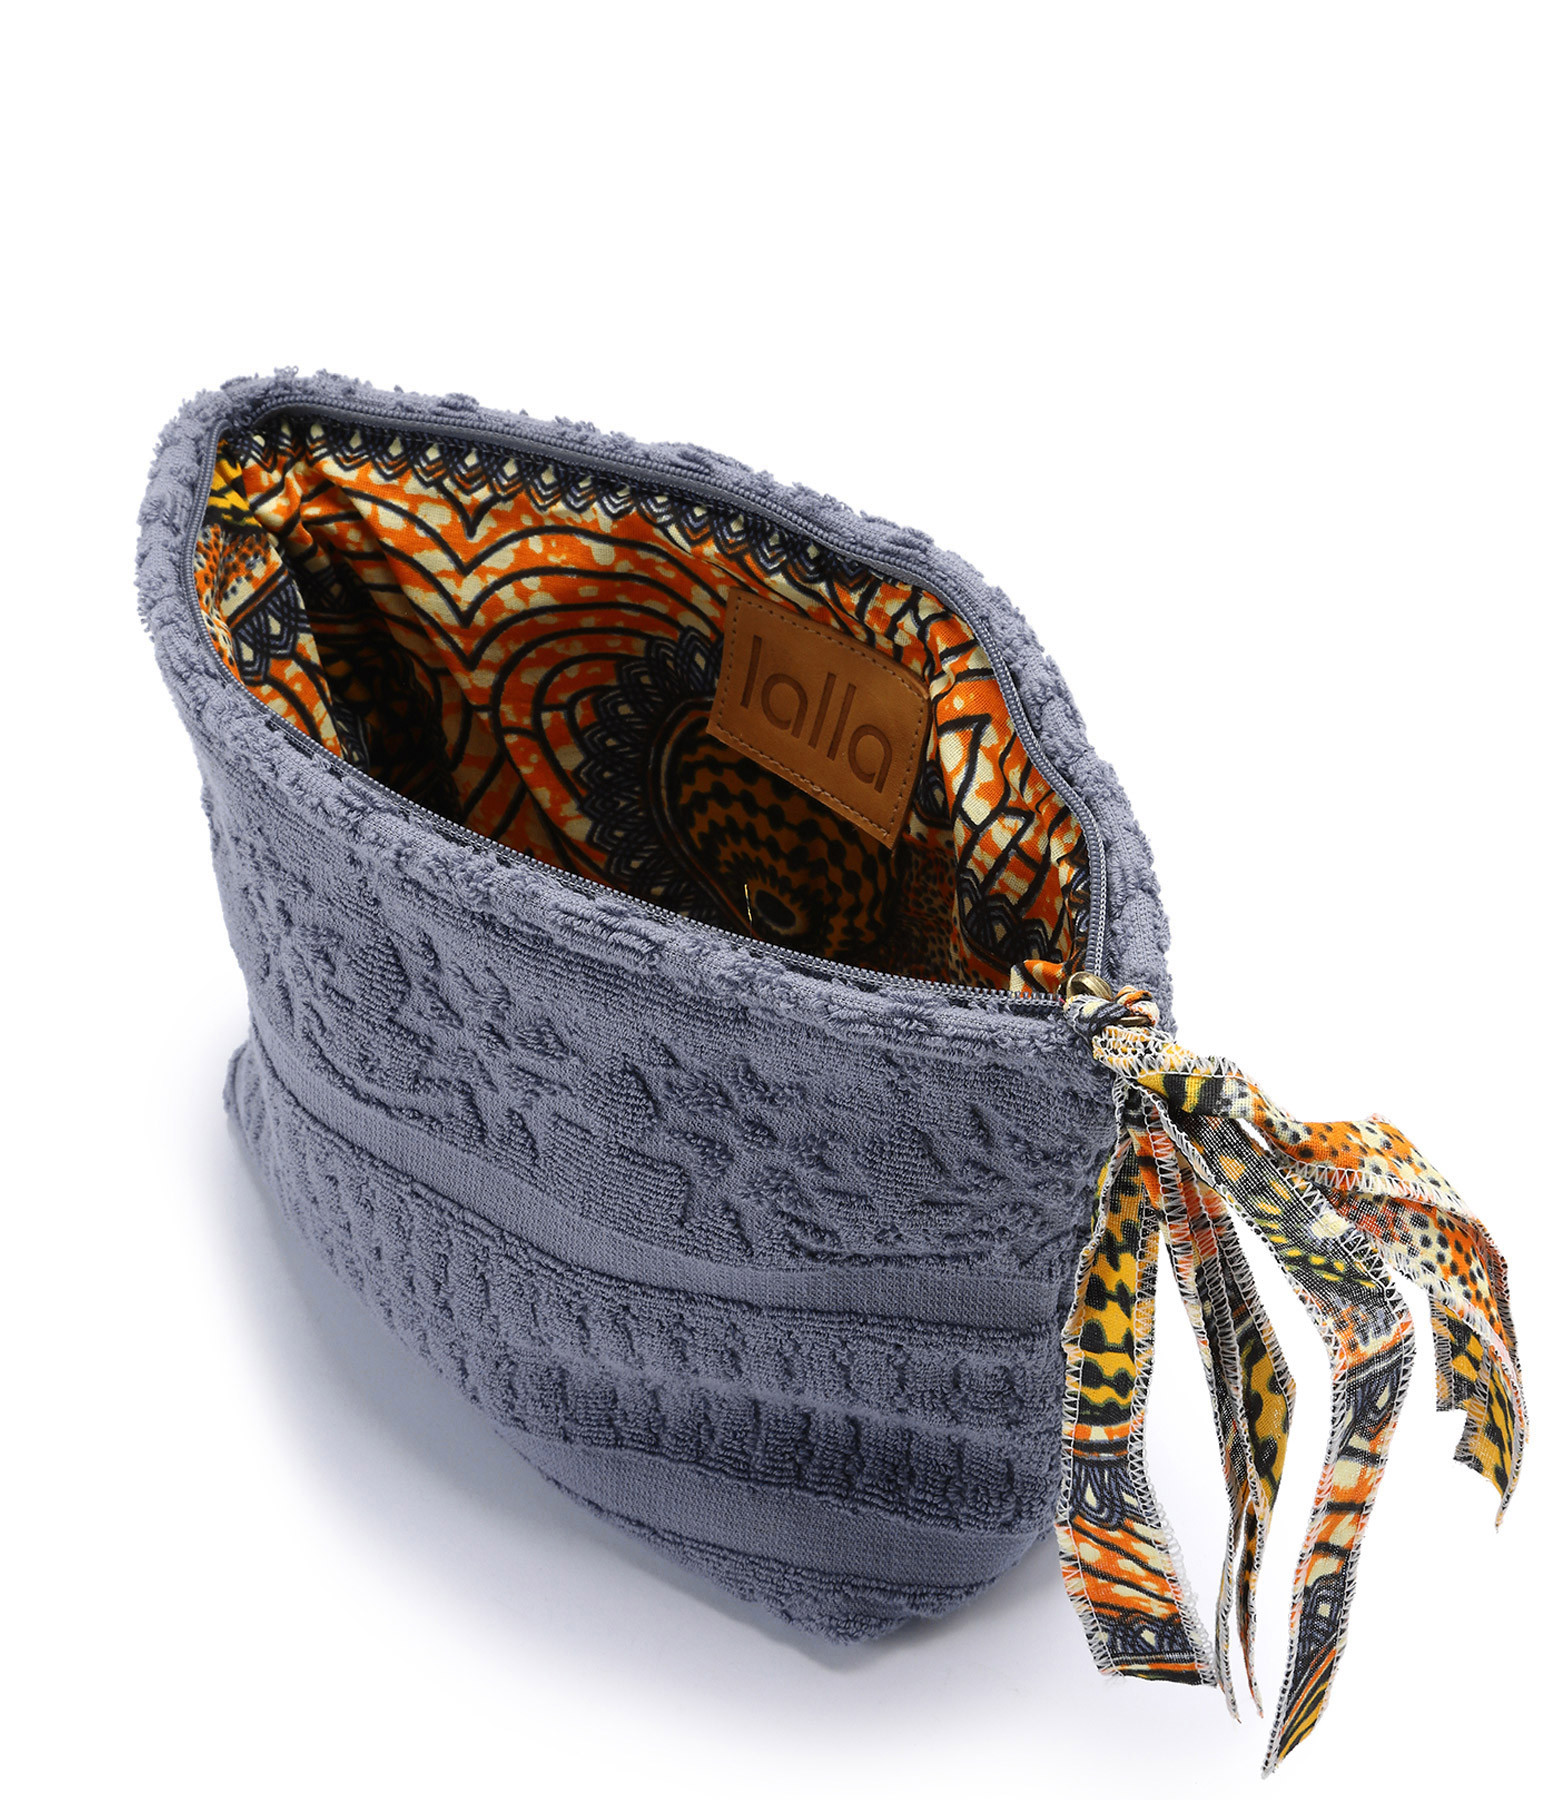 LALLA - Grande Trousse Walakin Eponge Anthracite